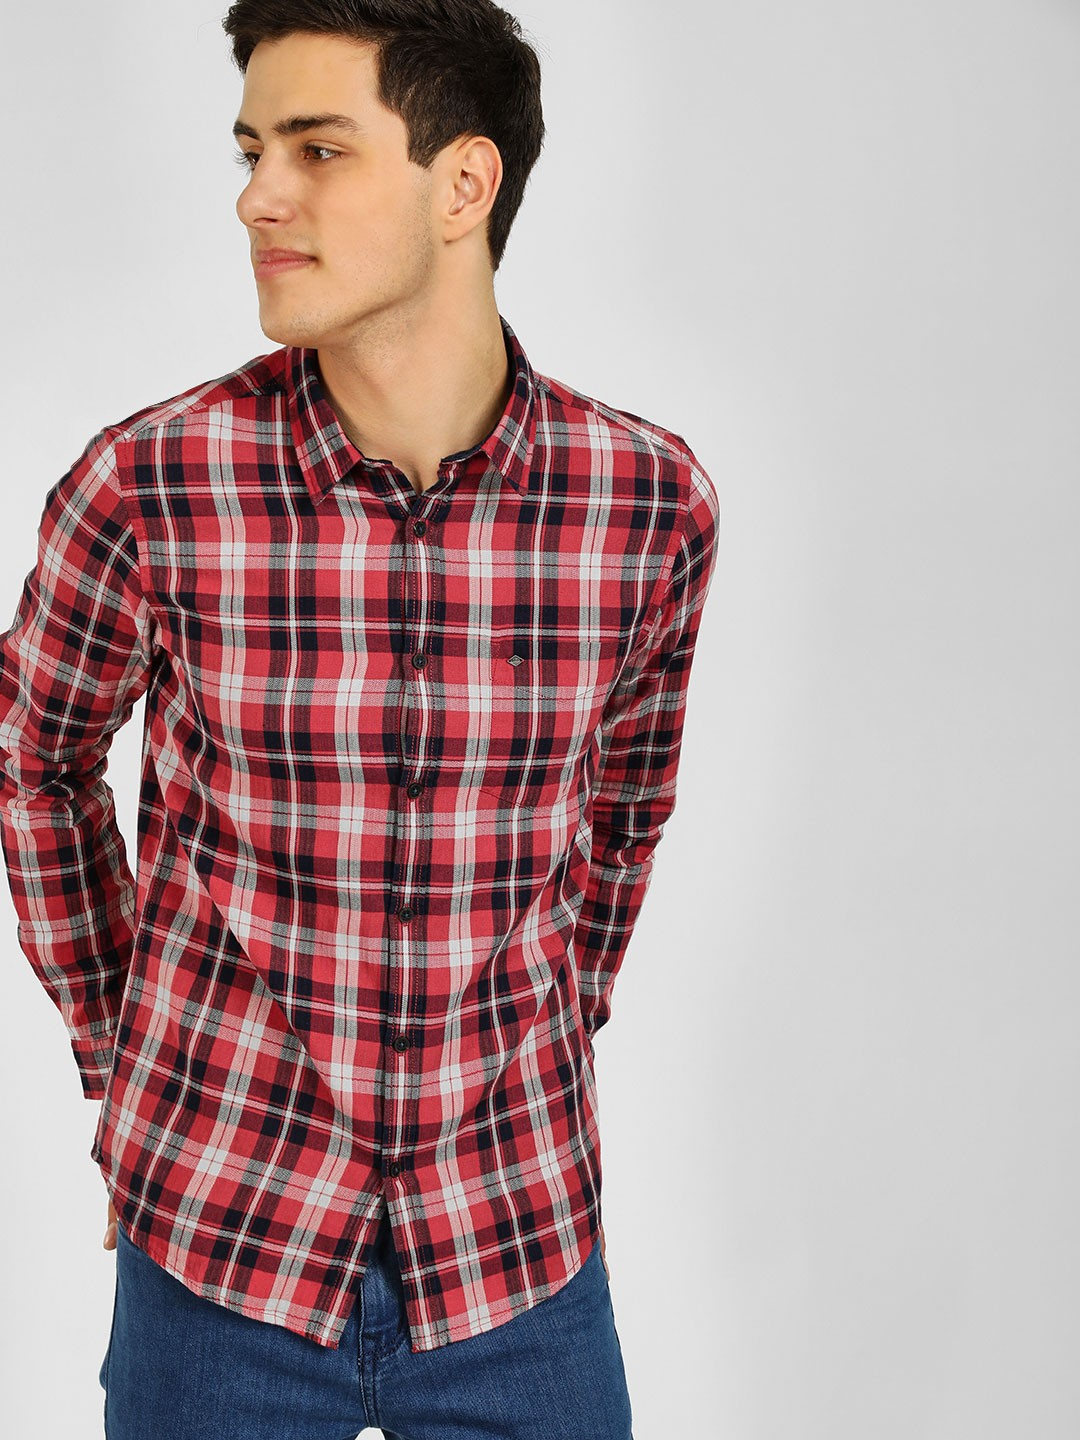 Lee Cooper Red Yarn Dyed Check Shirt 1